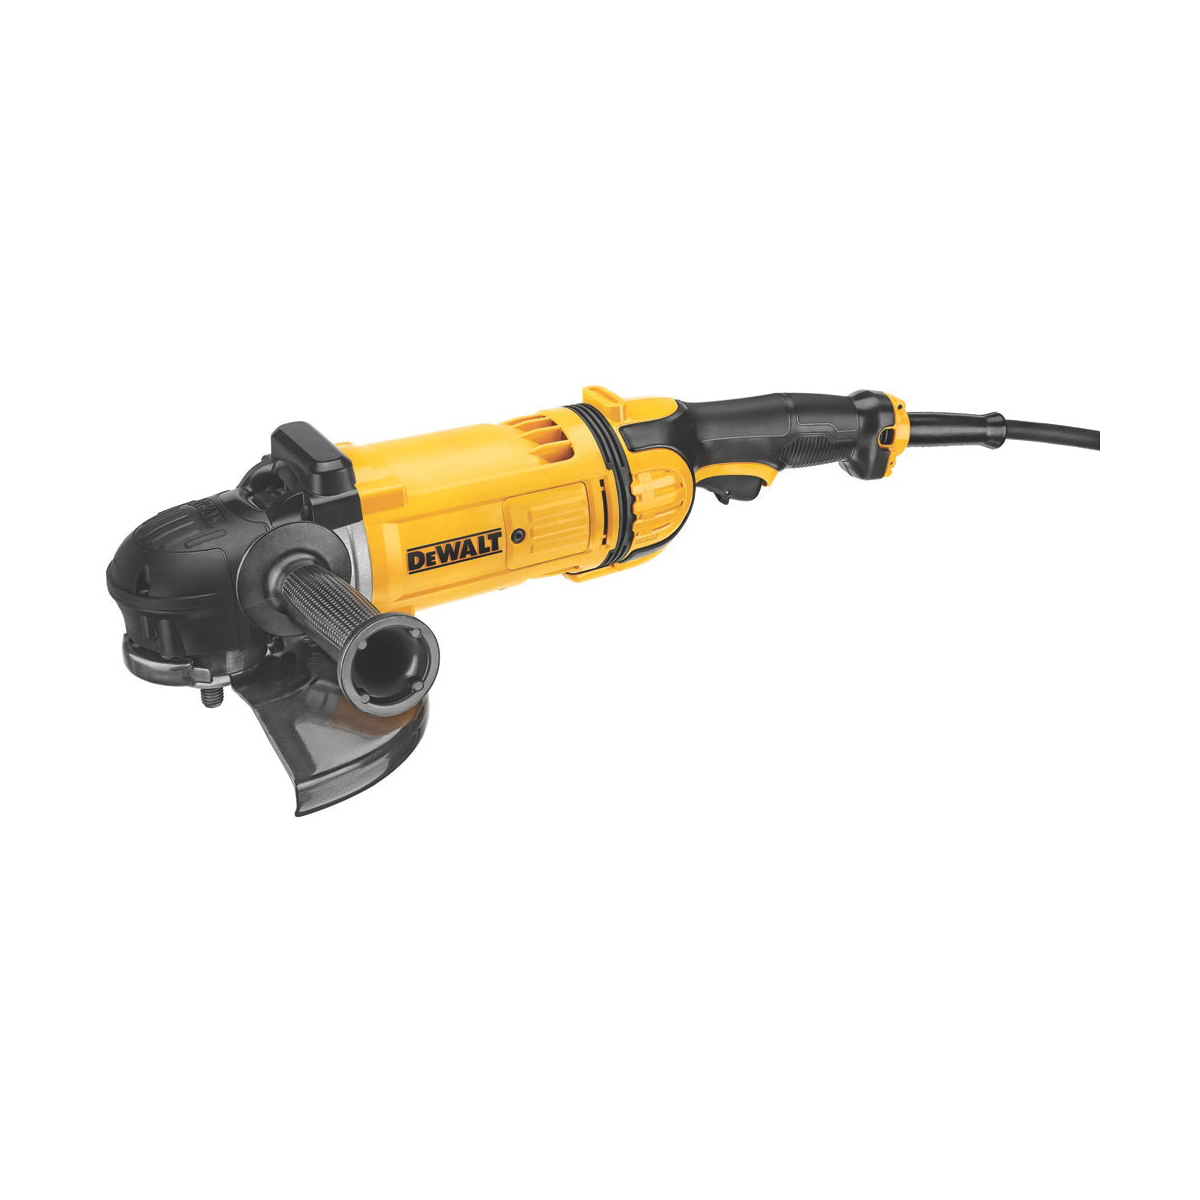 DeWALT® DWE4559CN Large Angle Grinder, 9 in Dia Wheel, 5/8-11 Arbor/Shank, 120 VAC, Yellow, Yes Dust Management, Lock-Off Trigger Switch Switch, Tool Only